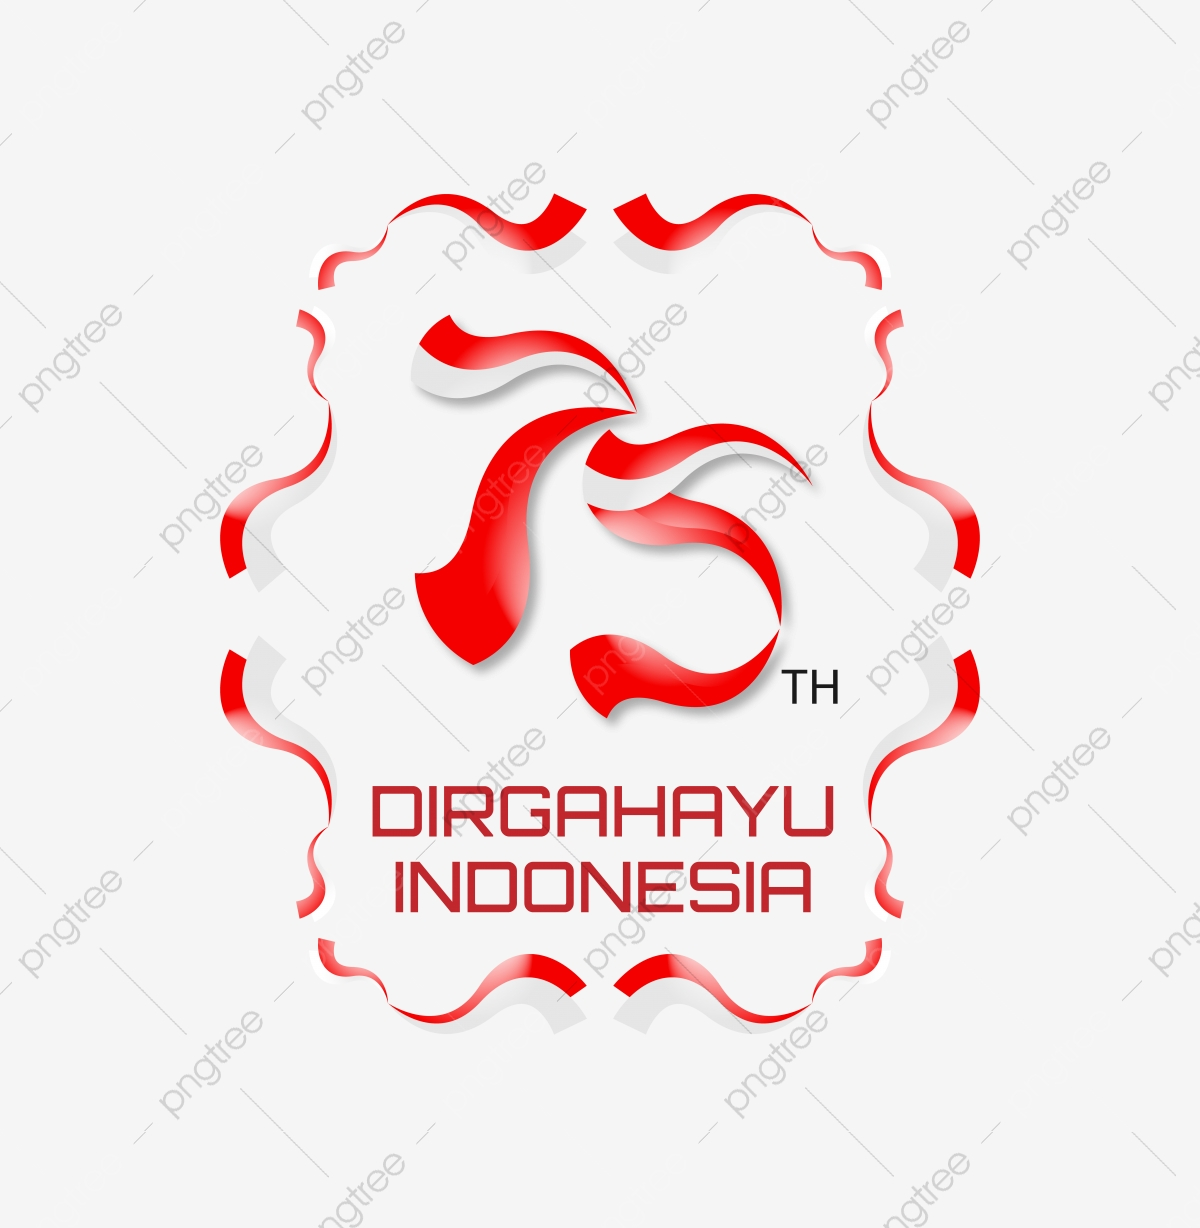 bendera merah putih png vector psd and clipart with transparent background for free download pngtree https pngtree com freepng dirgahayu indonesia abstract with bendera merah putih 5492259 html